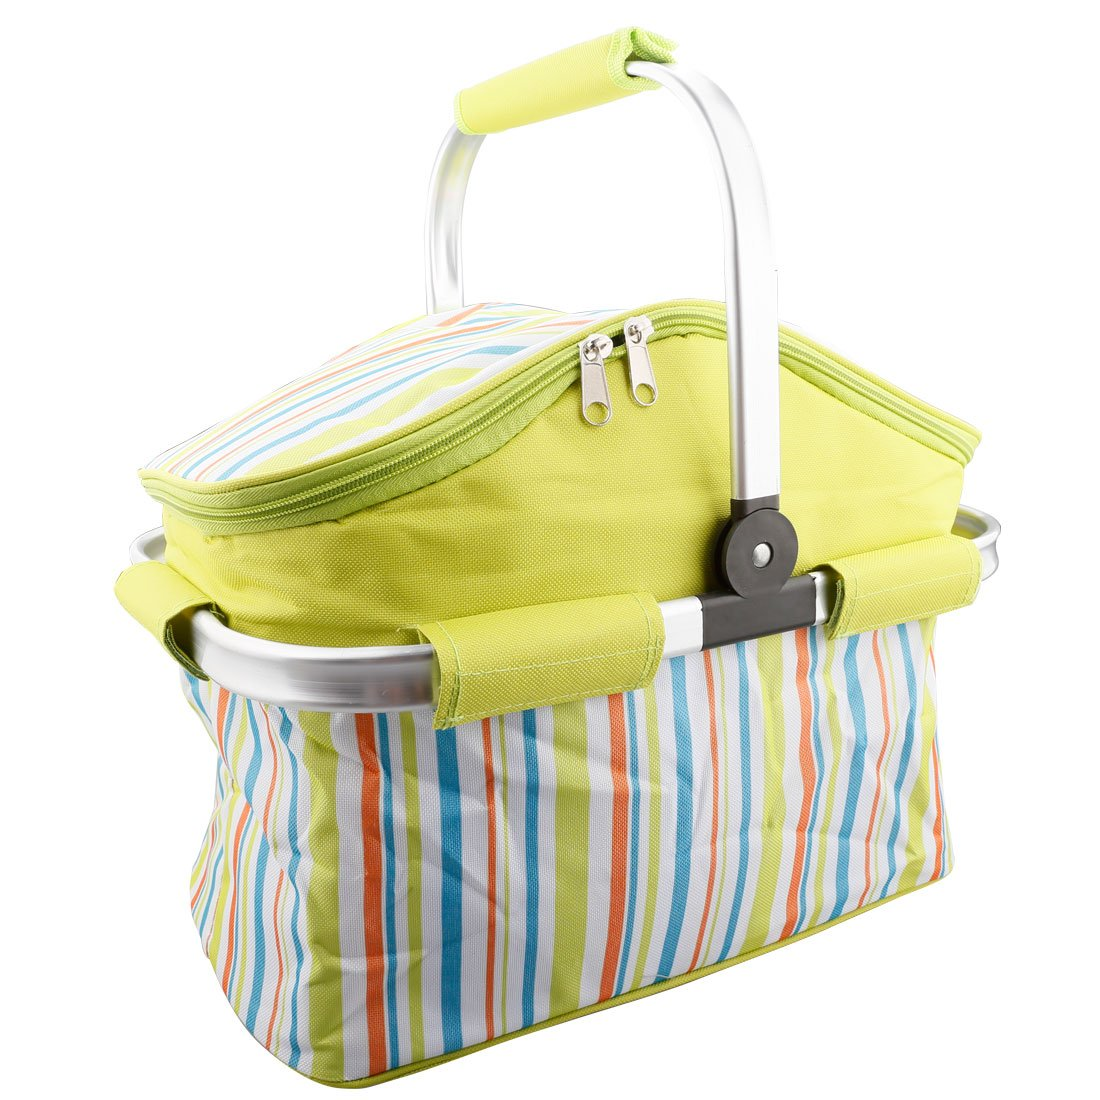 A-SZCXTOP 20L Folding Insulated Picnic Basket Cooler Bag for Food Storage Lightweight and Durable Tote-Green